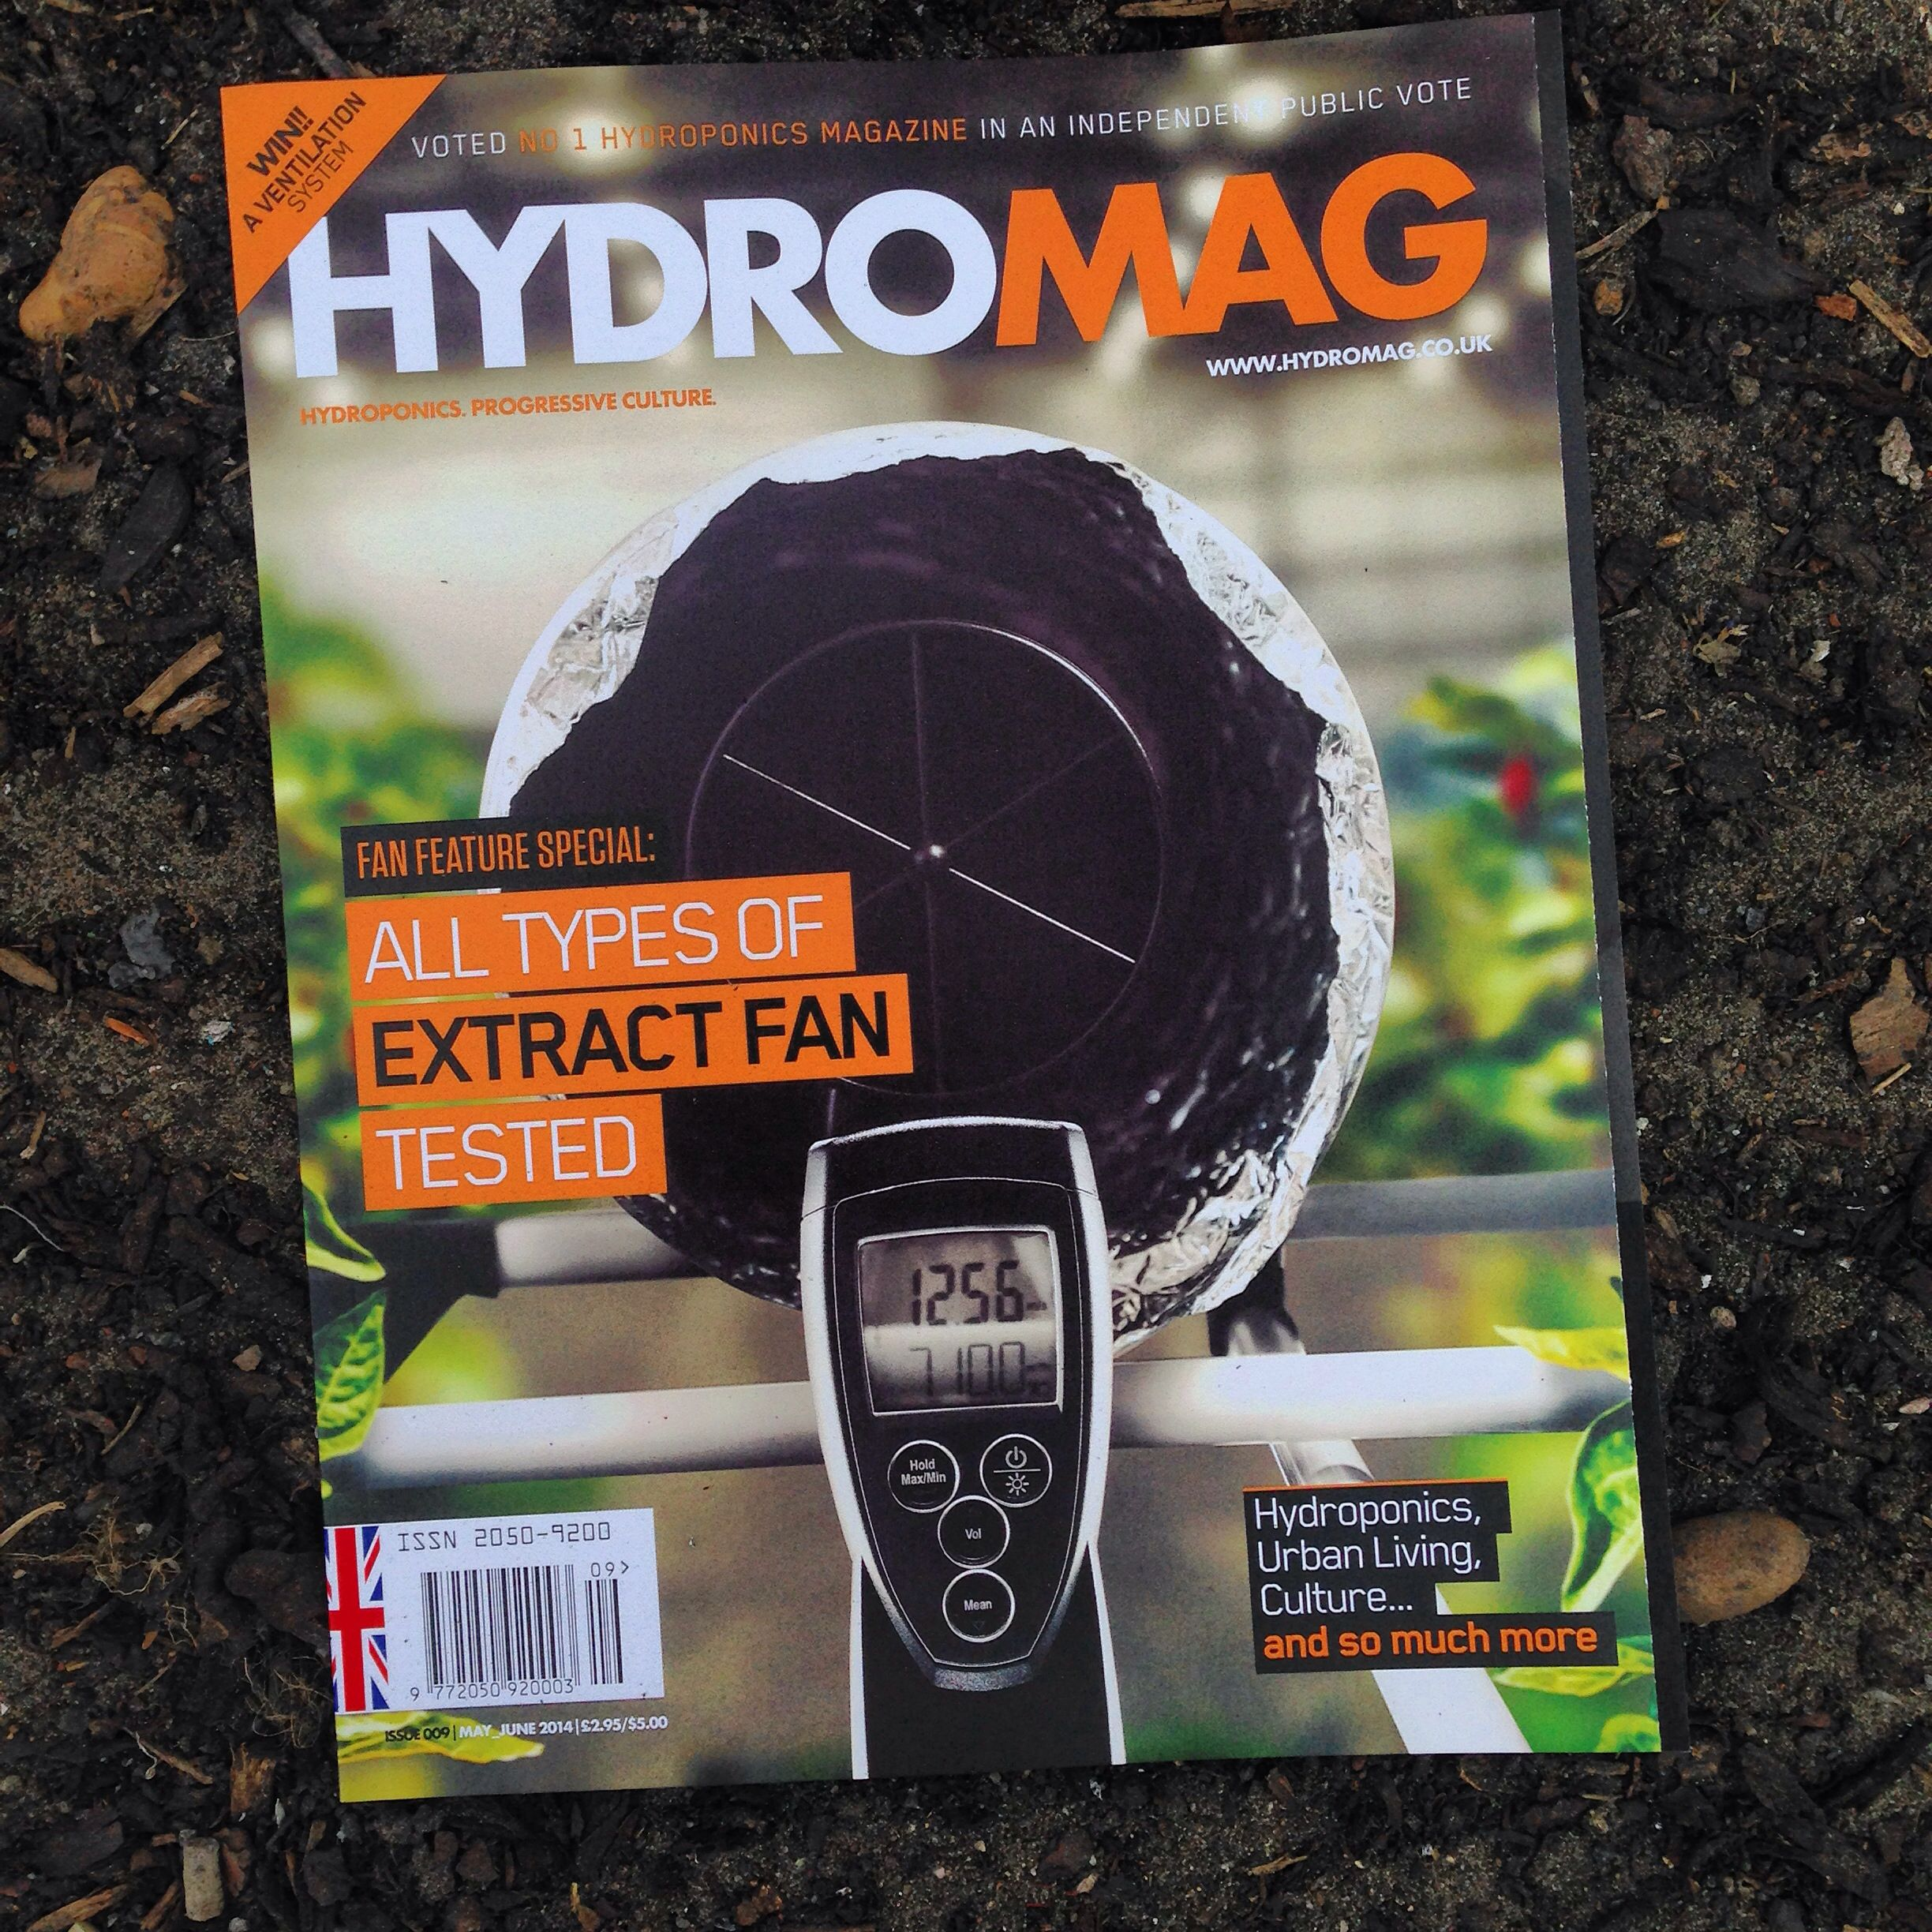 Hydromag available free with every order from www.hg-hydroponics.co.uk